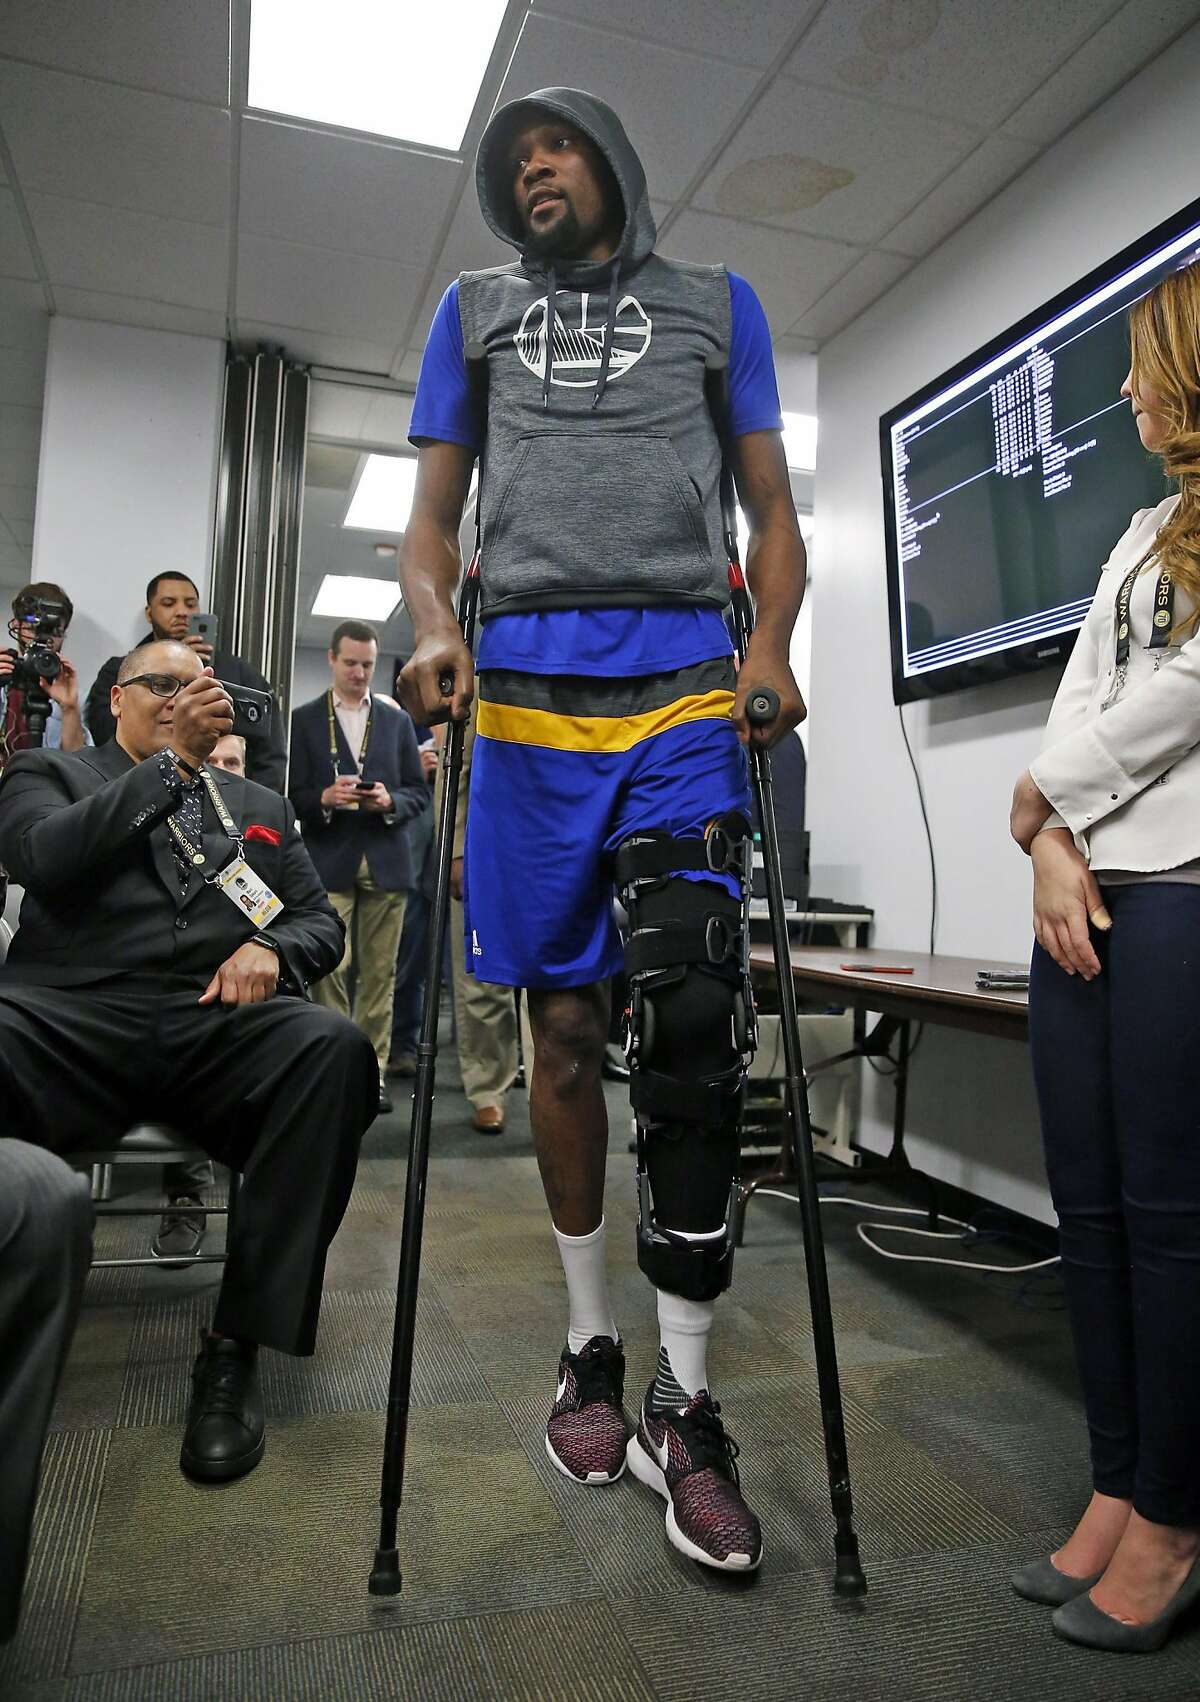 Golden State Warriors' Kevin Durant arrives for press conference about his injured left knee before Warriors play Boston Celtics in NBA game at Oracle Arena in Oakland, Calif., on Wednesday, March 8, 2017.